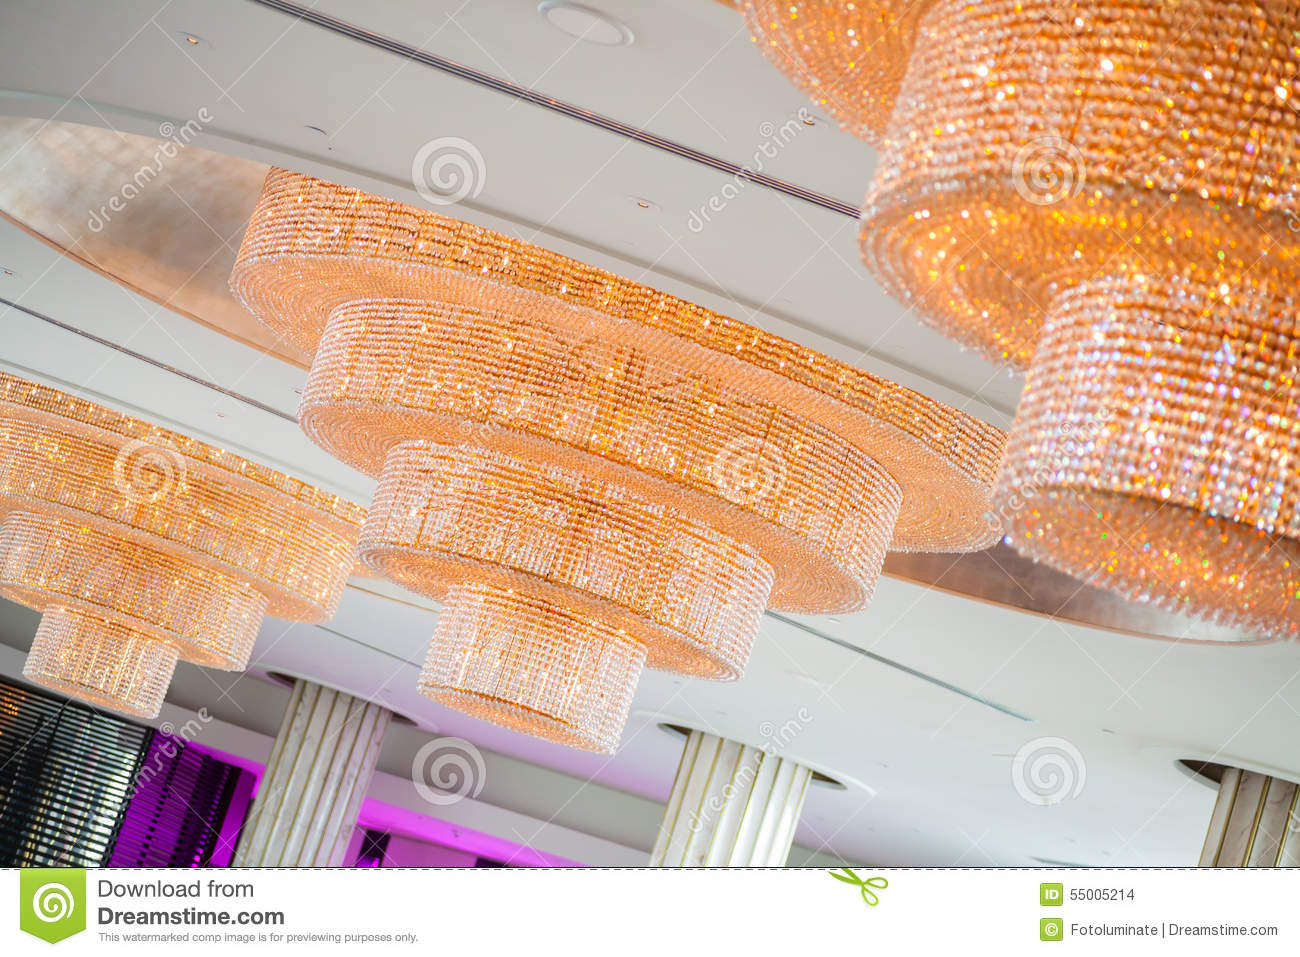 Fontainebleau hotel editorial stock image image of building 55005214 download fontainebleau hotel editorial stock image image of building 55005214 aloadofball Gallery